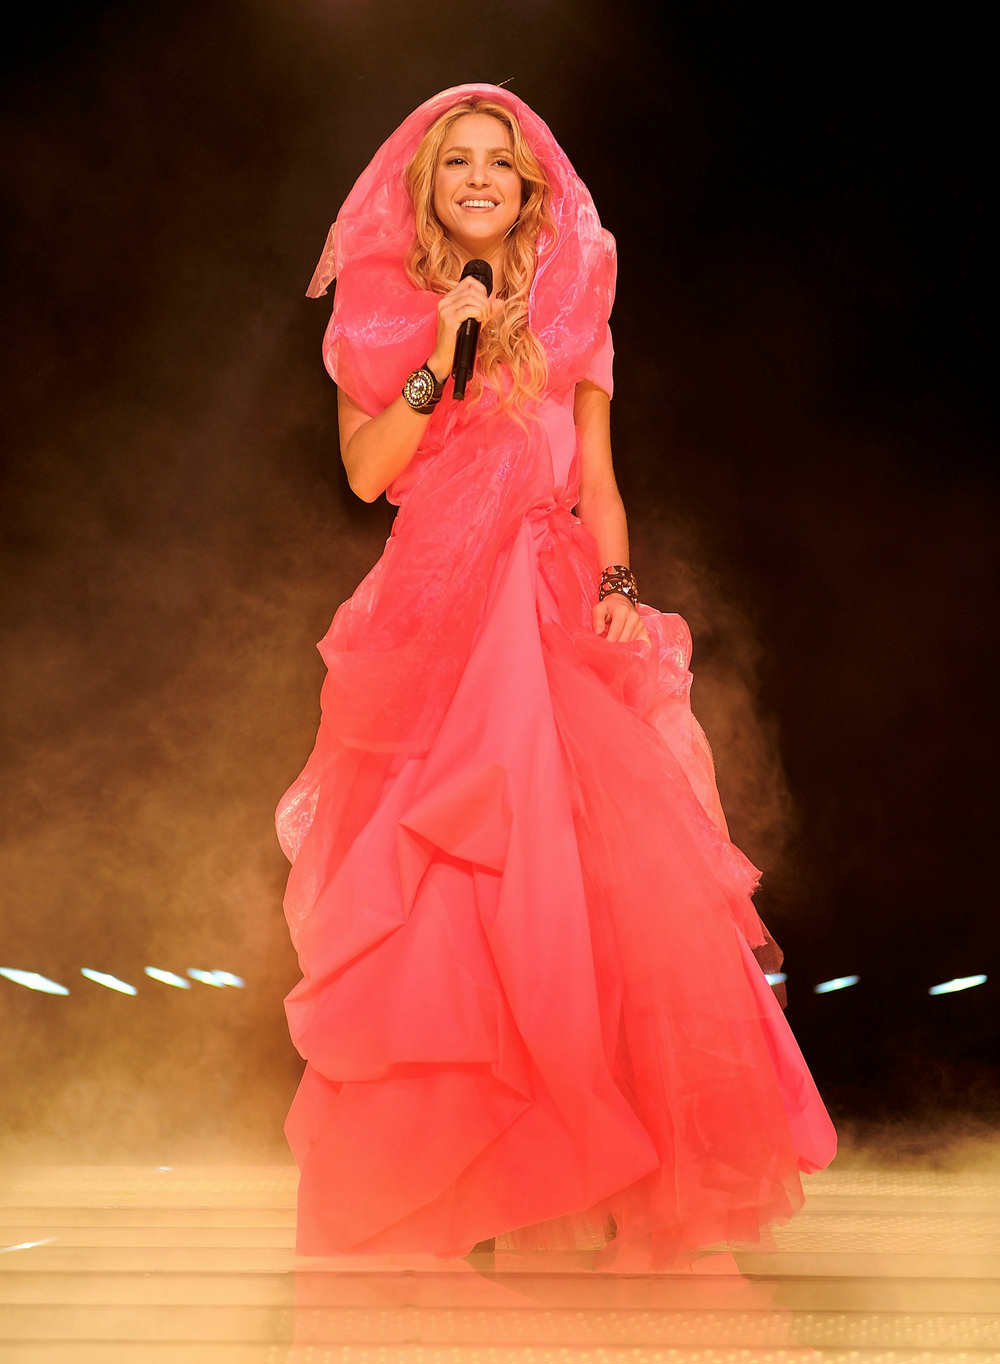 waka latin singles K-mix versions of waka waka  the song is one of the best-selling singles in spain waka waka (this time for  loca is a latin-pop song composed of horn-laden .